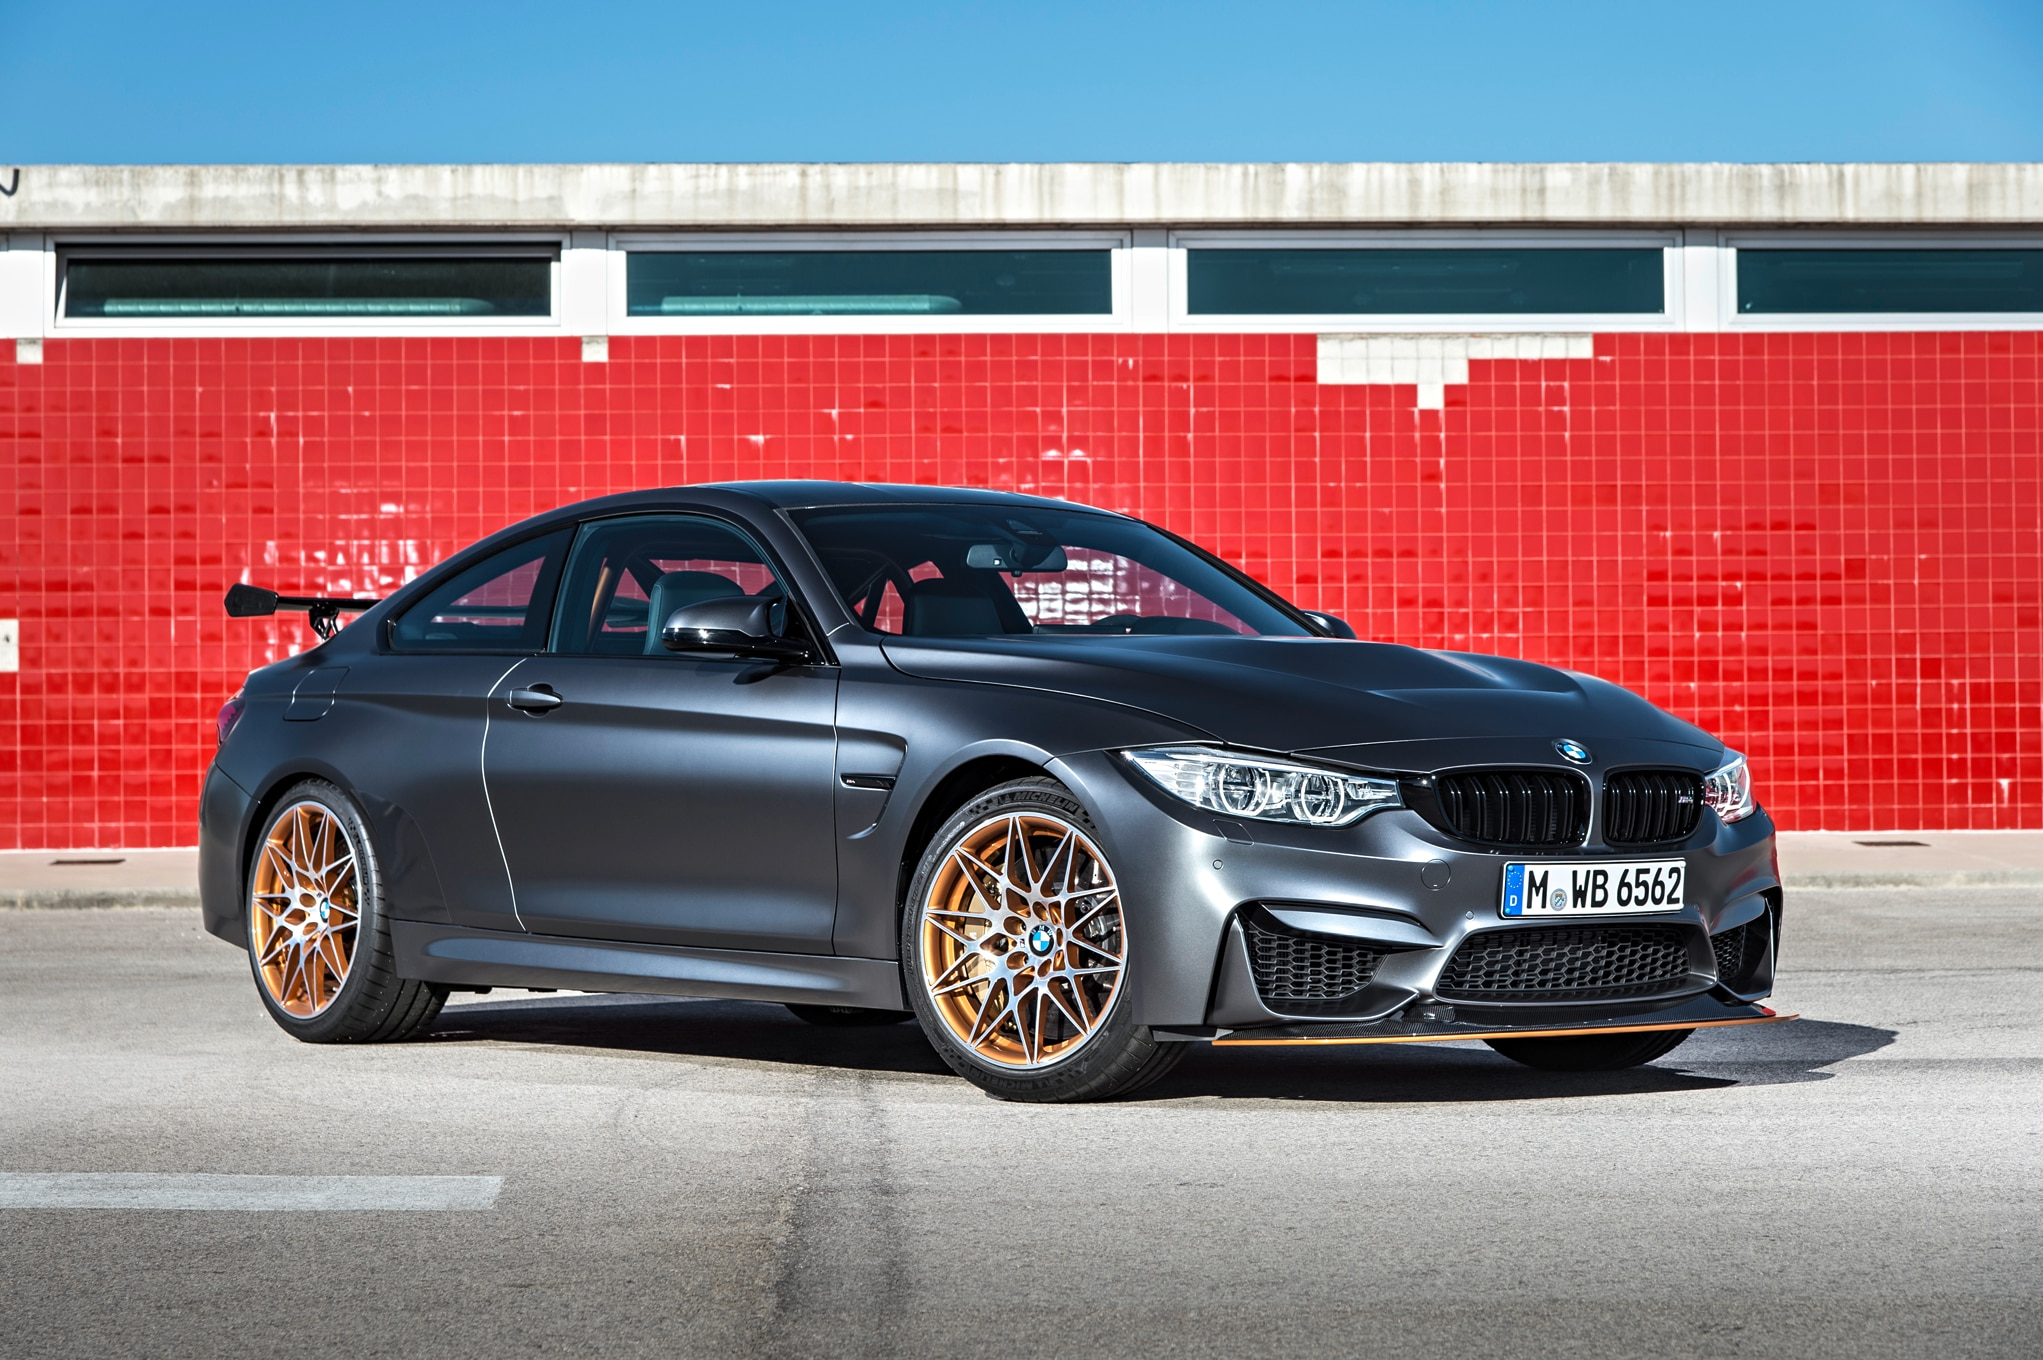 BMW M4 Gts For Sale >> 2016 BMW M4 GTS Review